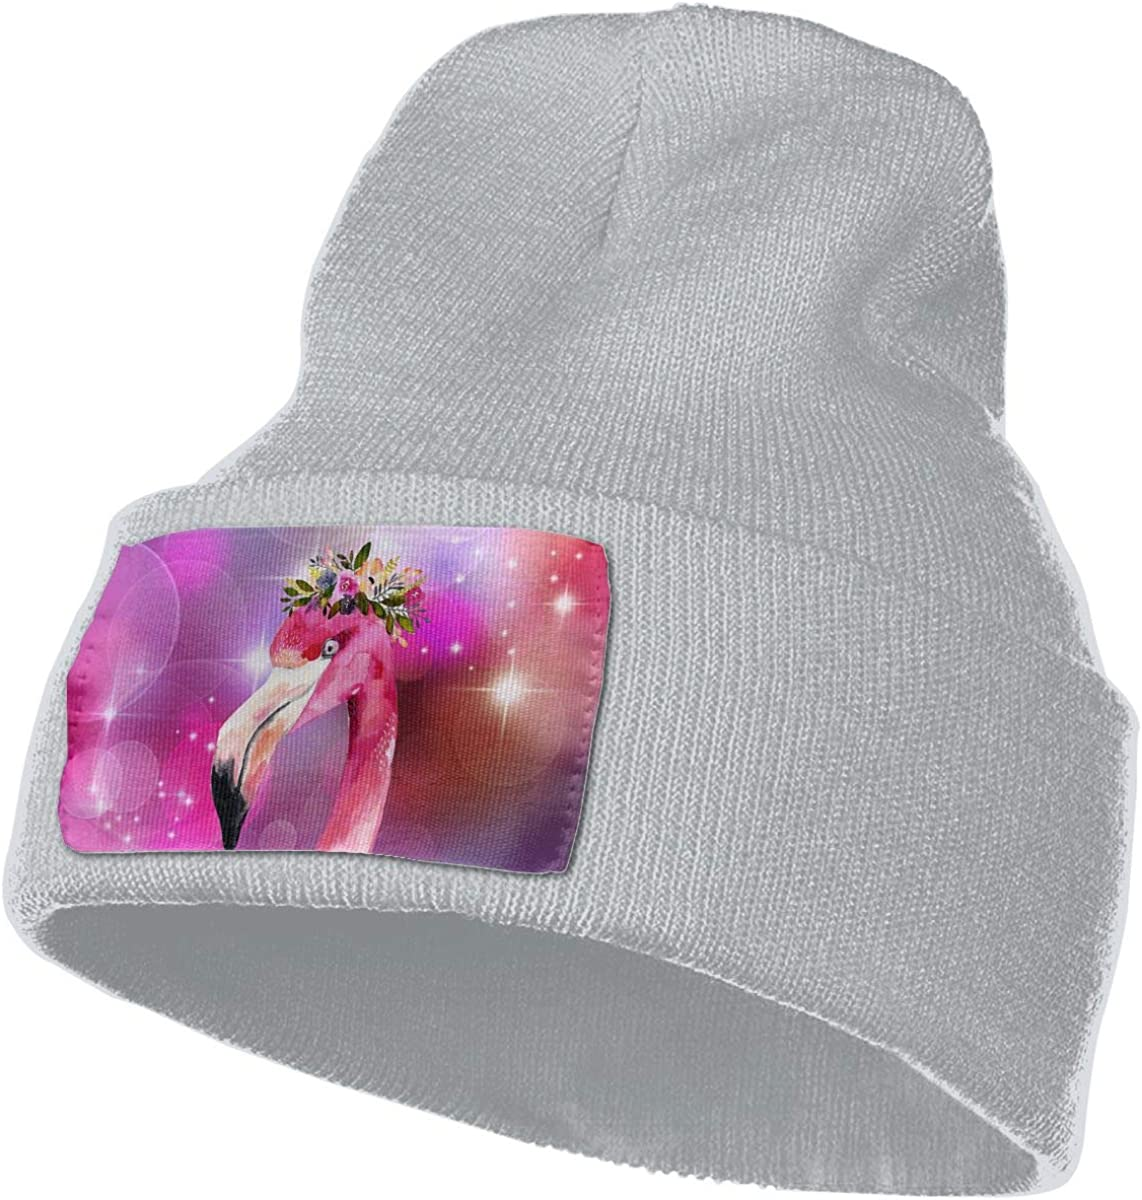 Flamingo Hat for Men and Women Winter Warm Hats Knit Slouchy Thick Skull Cap